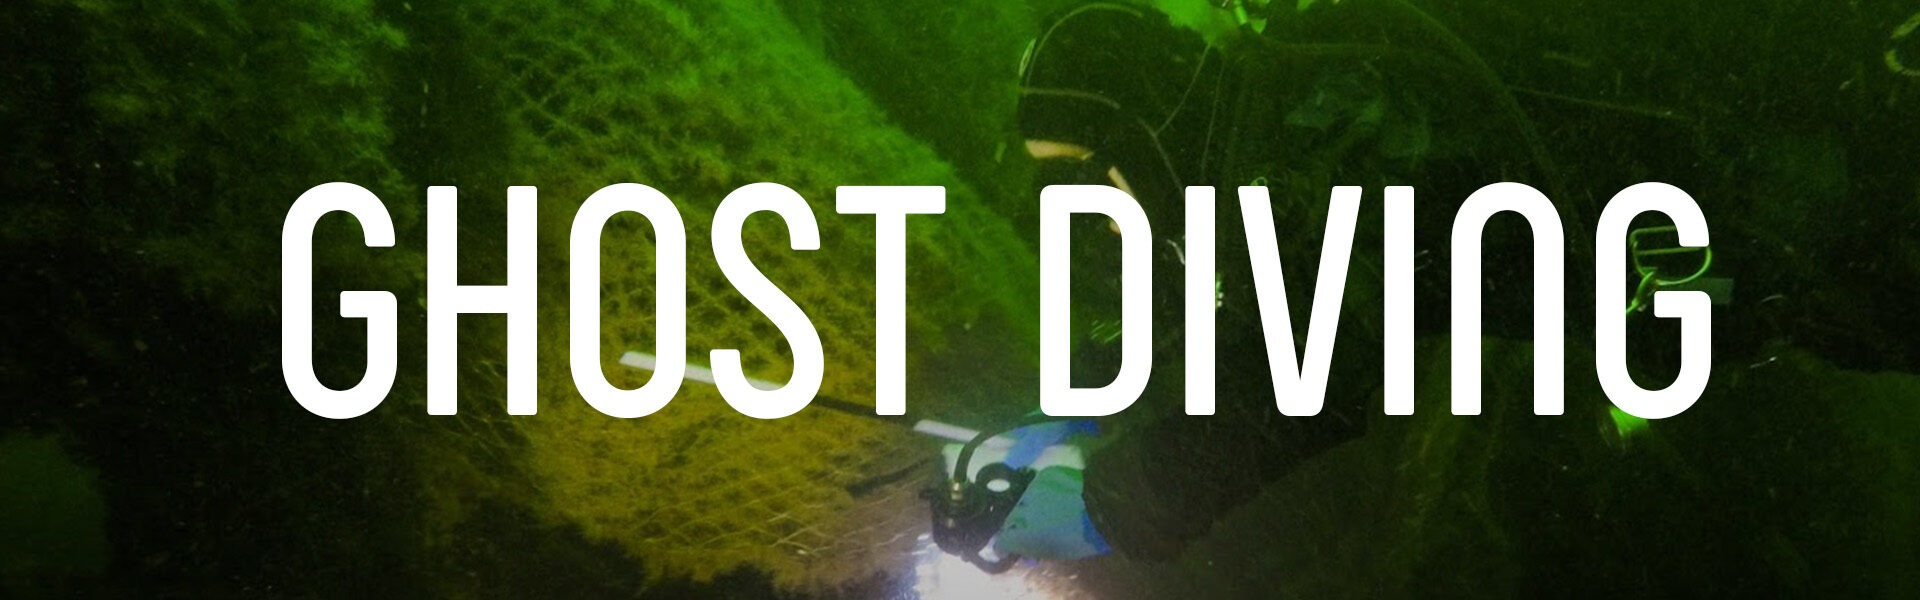 Odc. 111: Ghost diving